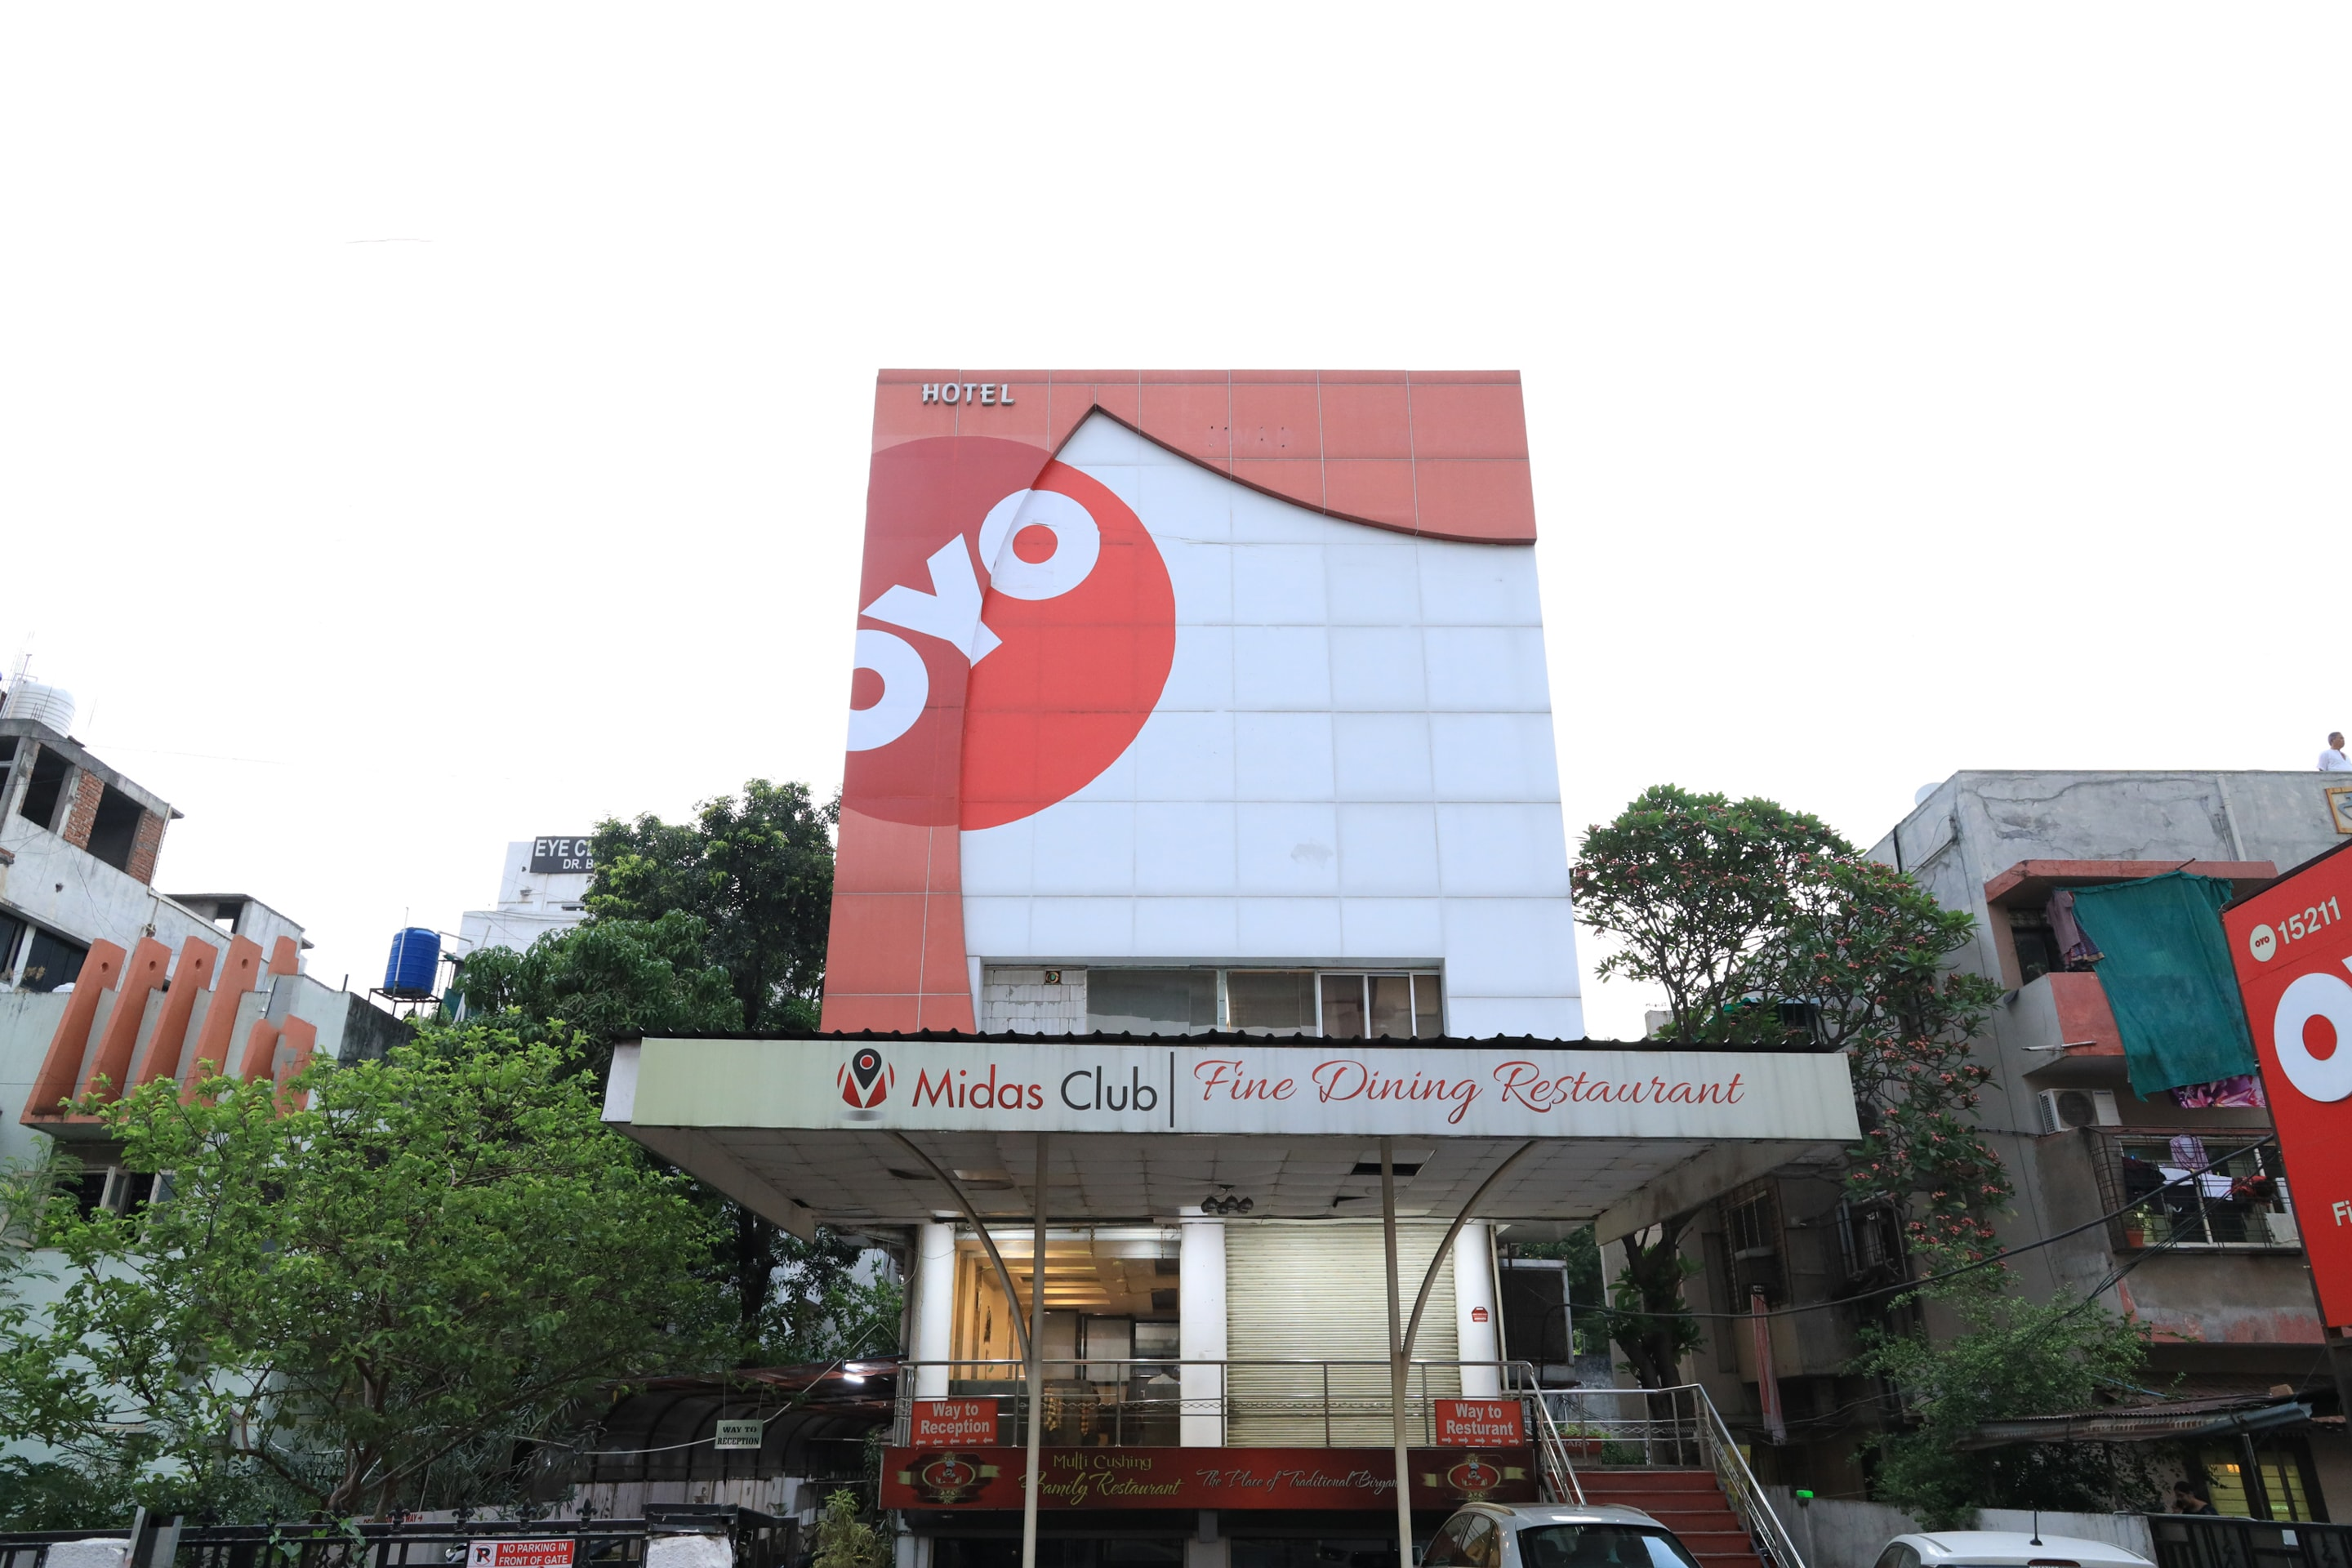 Oyo 15211 Hotel Midas, Nagpur - Book this hotel at the BEST PRICE